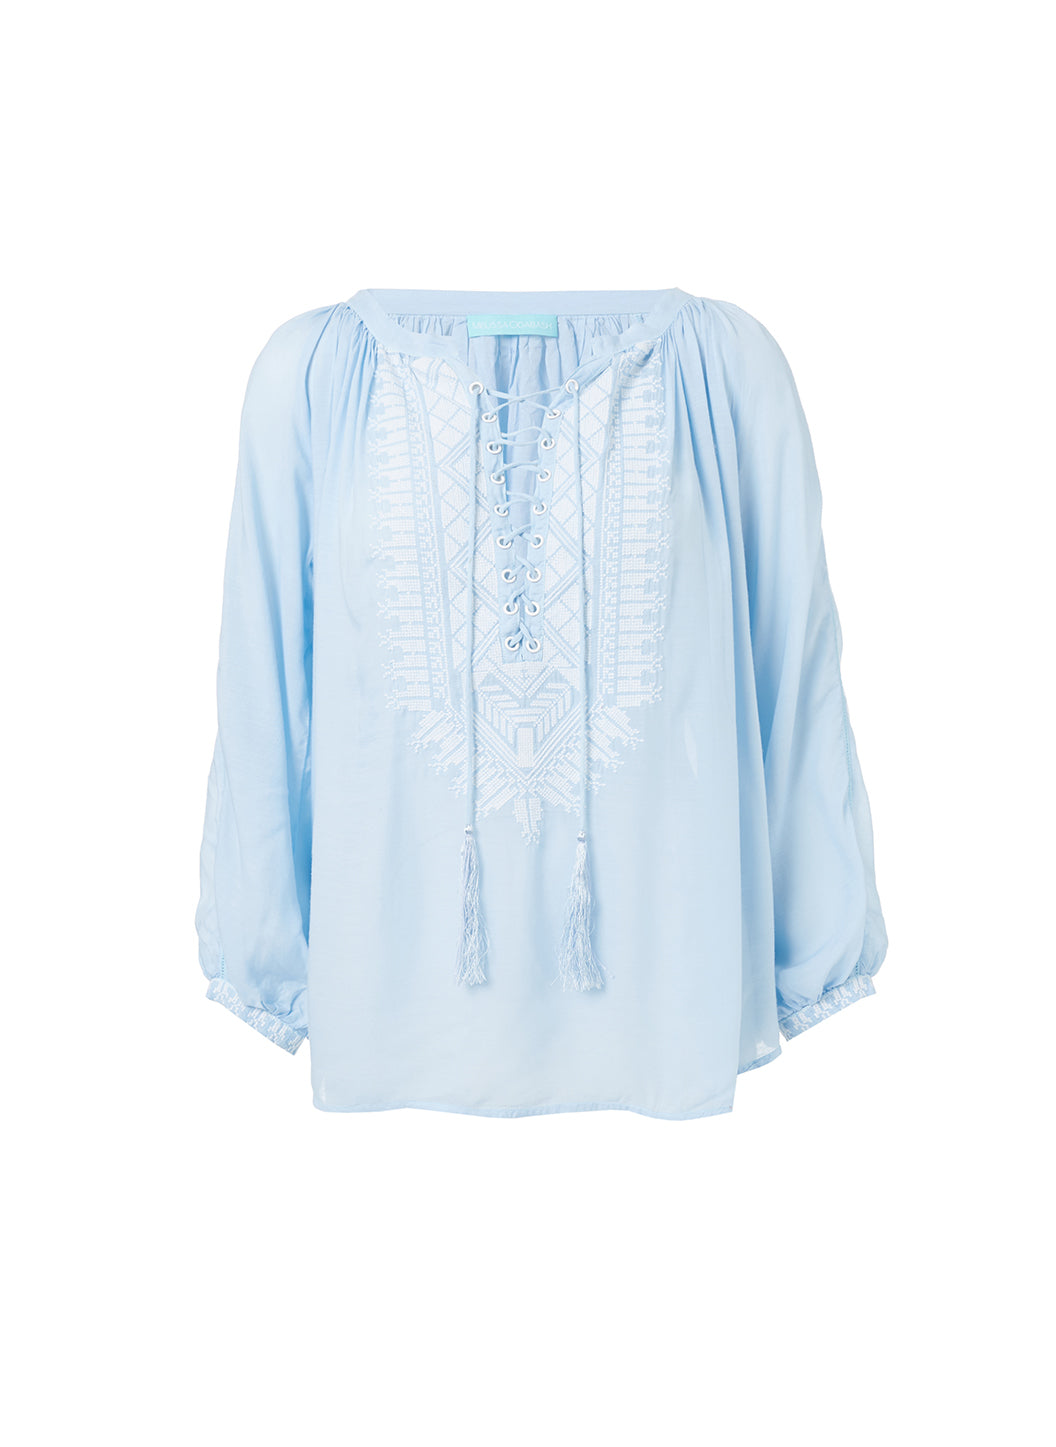 Simona Blue Lace-Up Embroidered Blouse - Melissa Odabash Beachwear